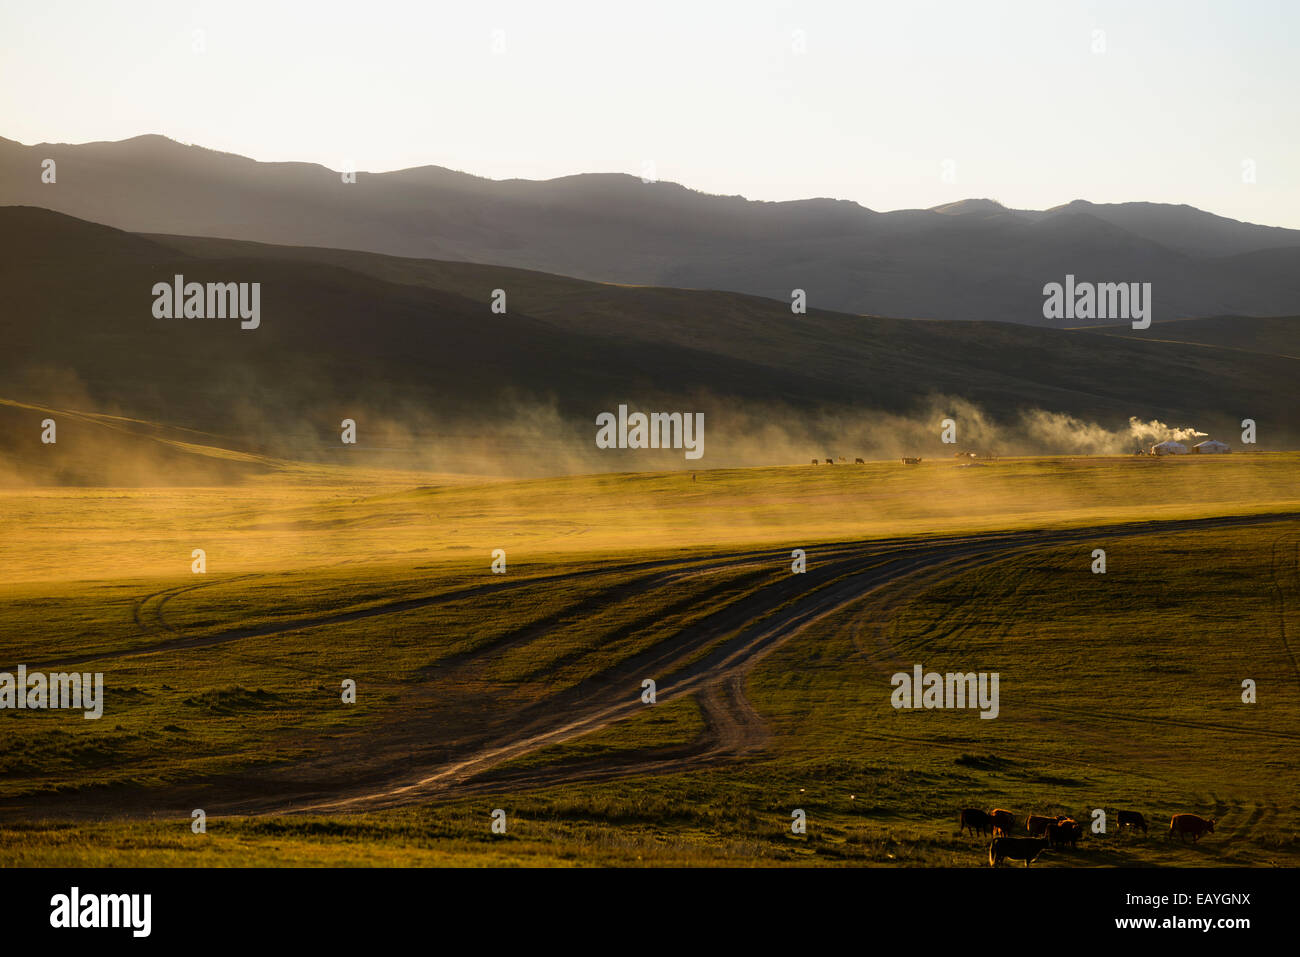 Gers on the steppe, Mongolia - Stock Image